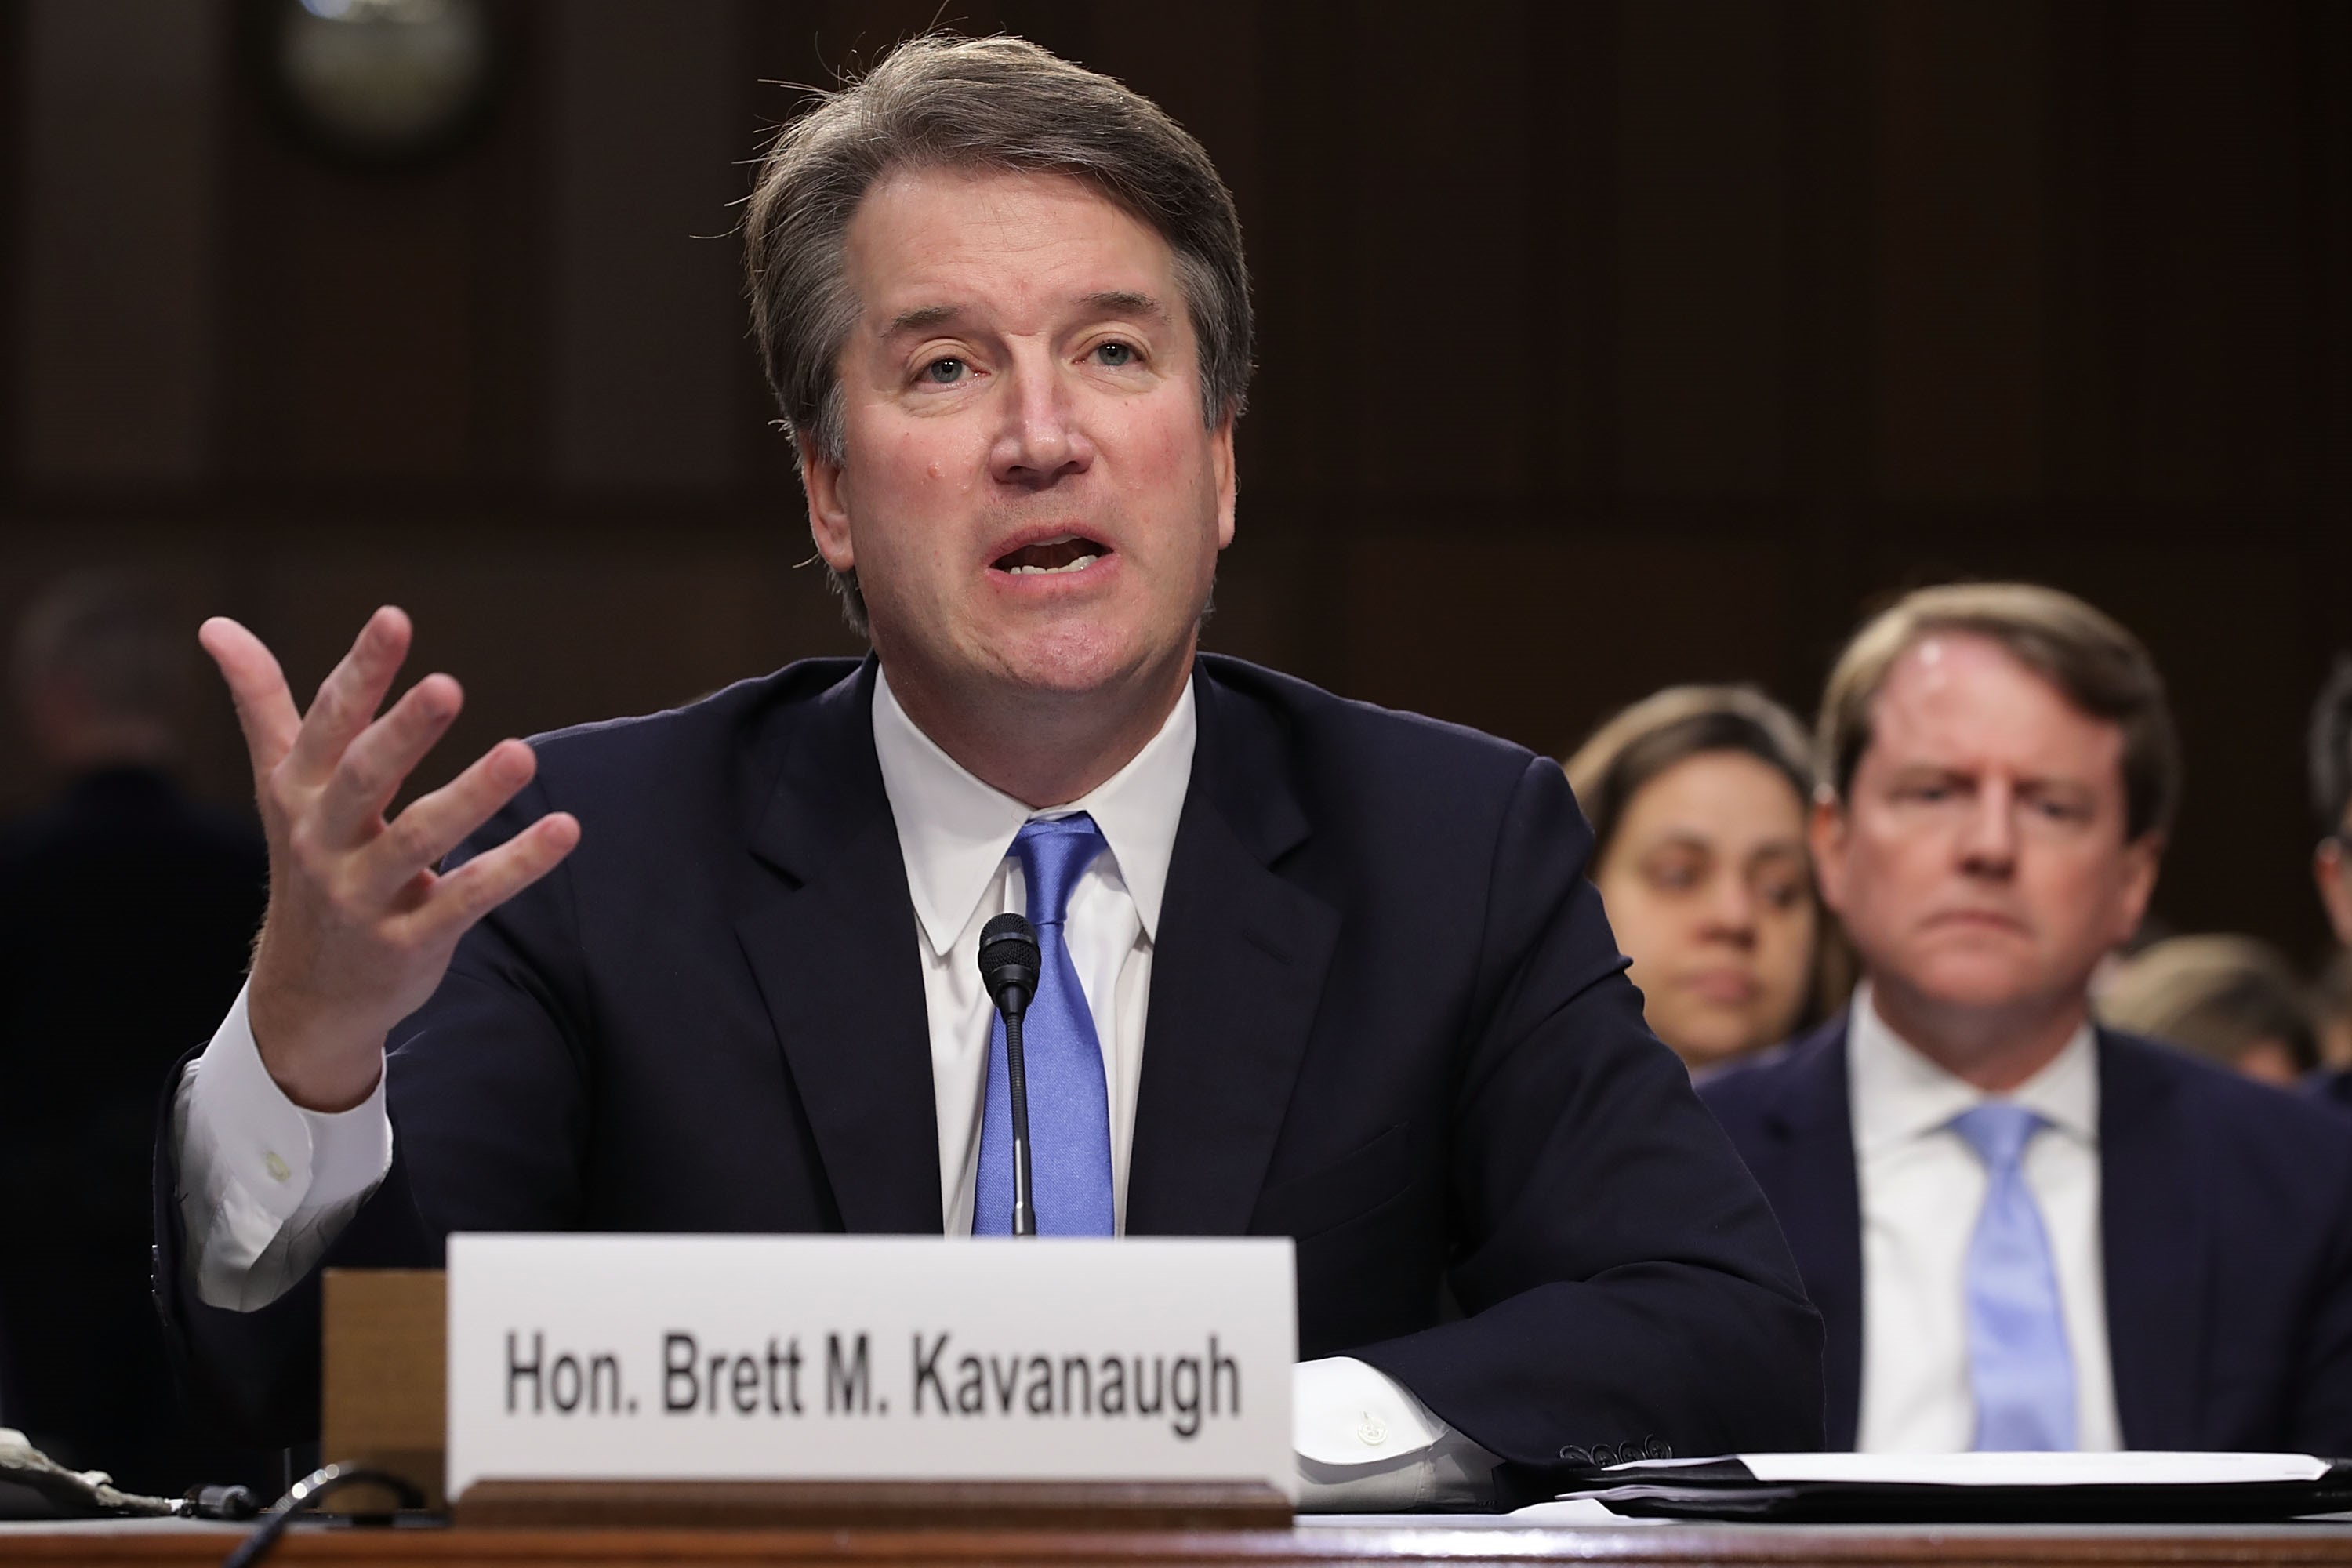 Liberal Activist-Created Website Using Kavanaugh's Name Could Be Illegal